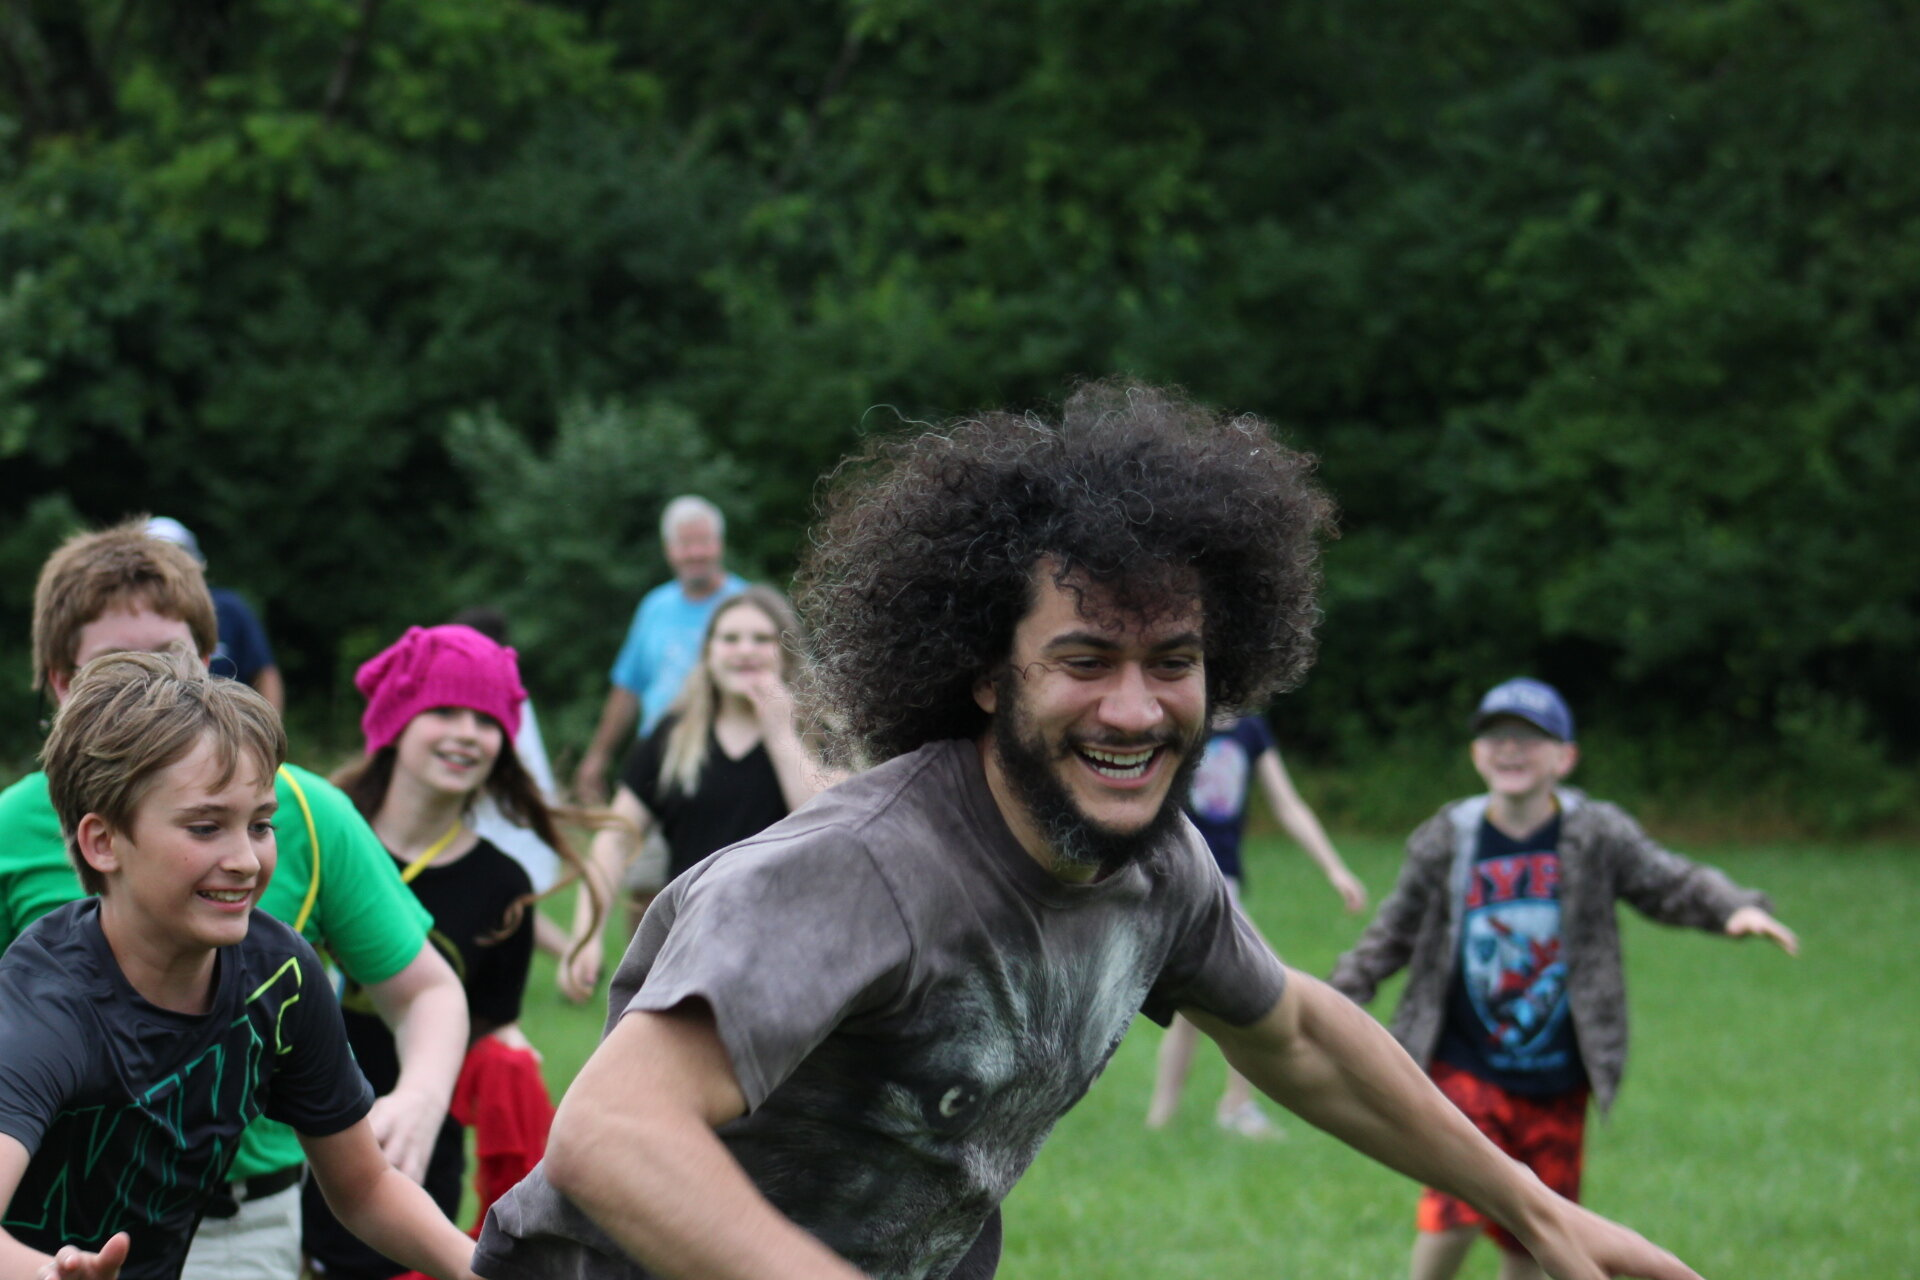 Campers and volunteers playing field games at Camp Quest Ohio, 2019.